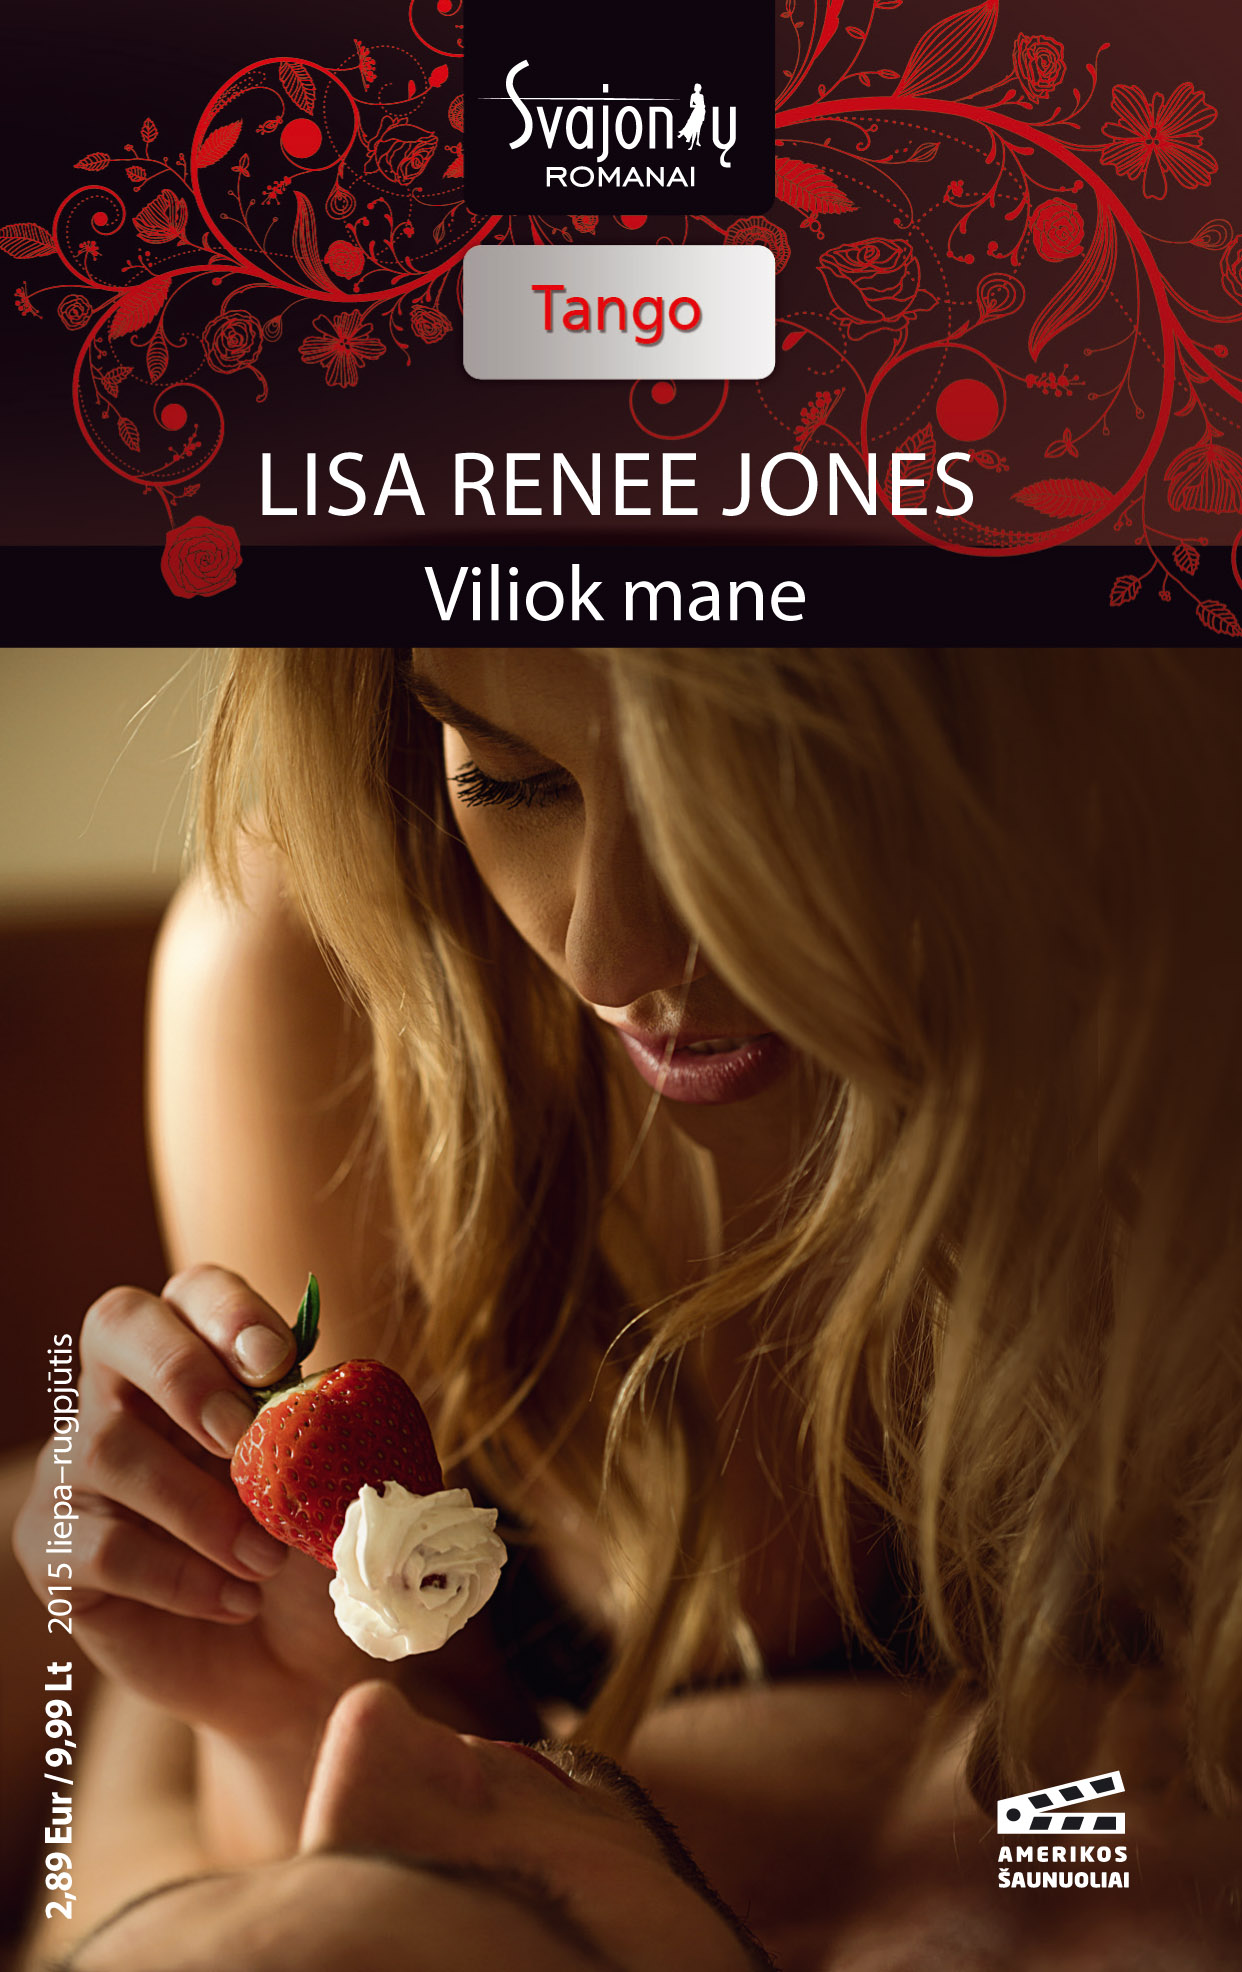 Lisa Renee Jones Viliok mane lisa renee jones viliok mane